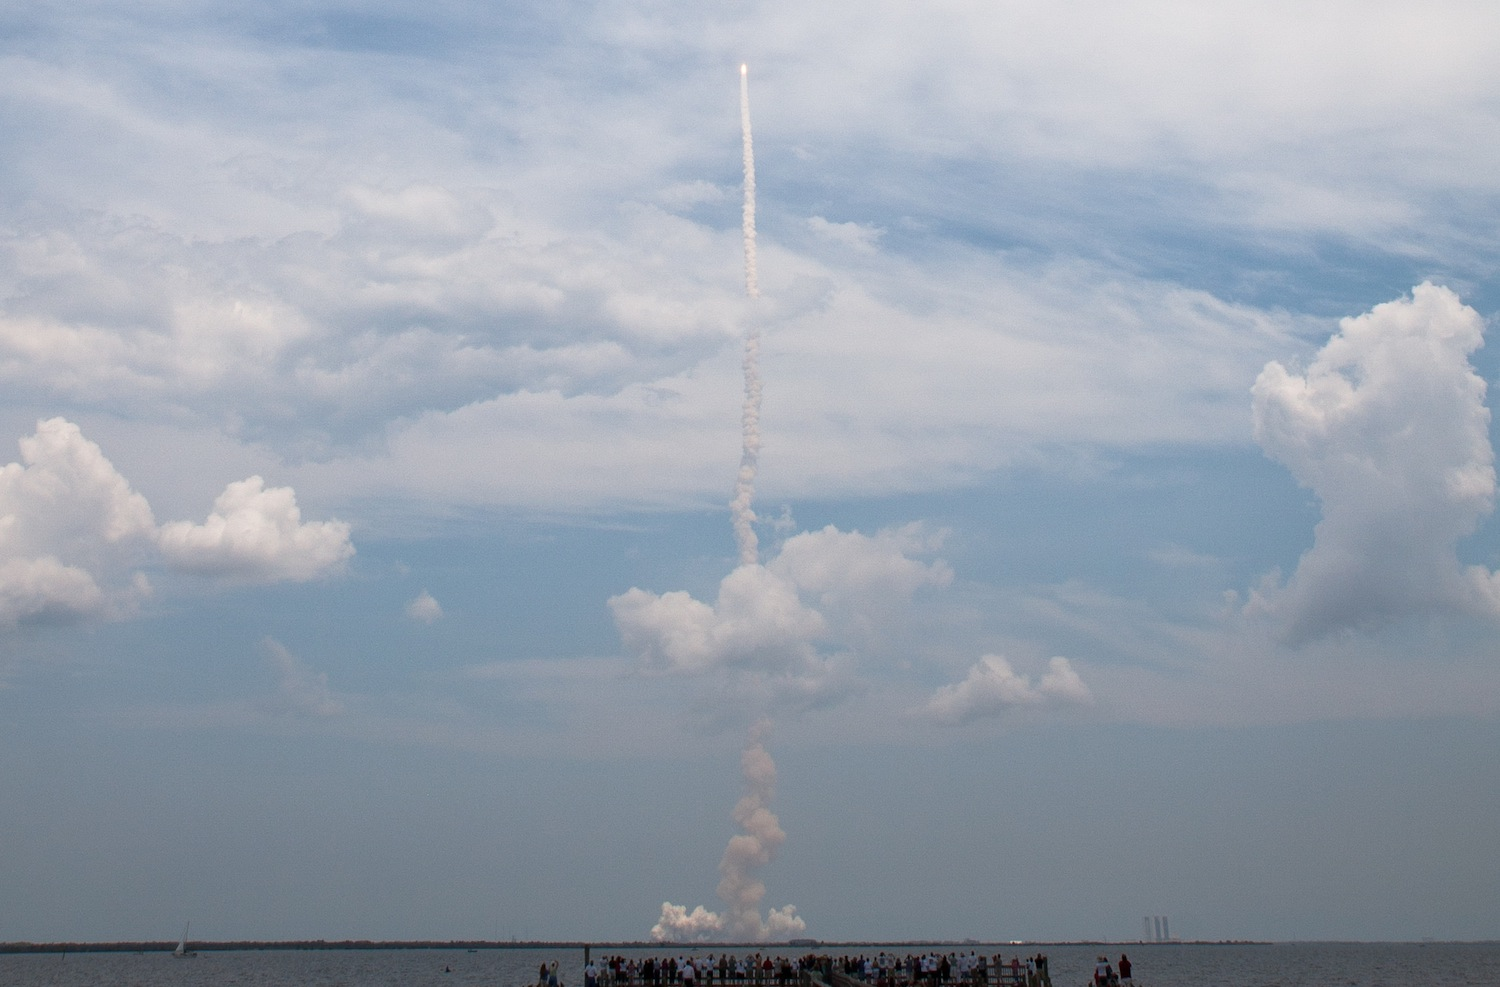 Seeing the launch of Space Shuttle STS-125 in 2009 fulfilled a lifelong dream of mine.